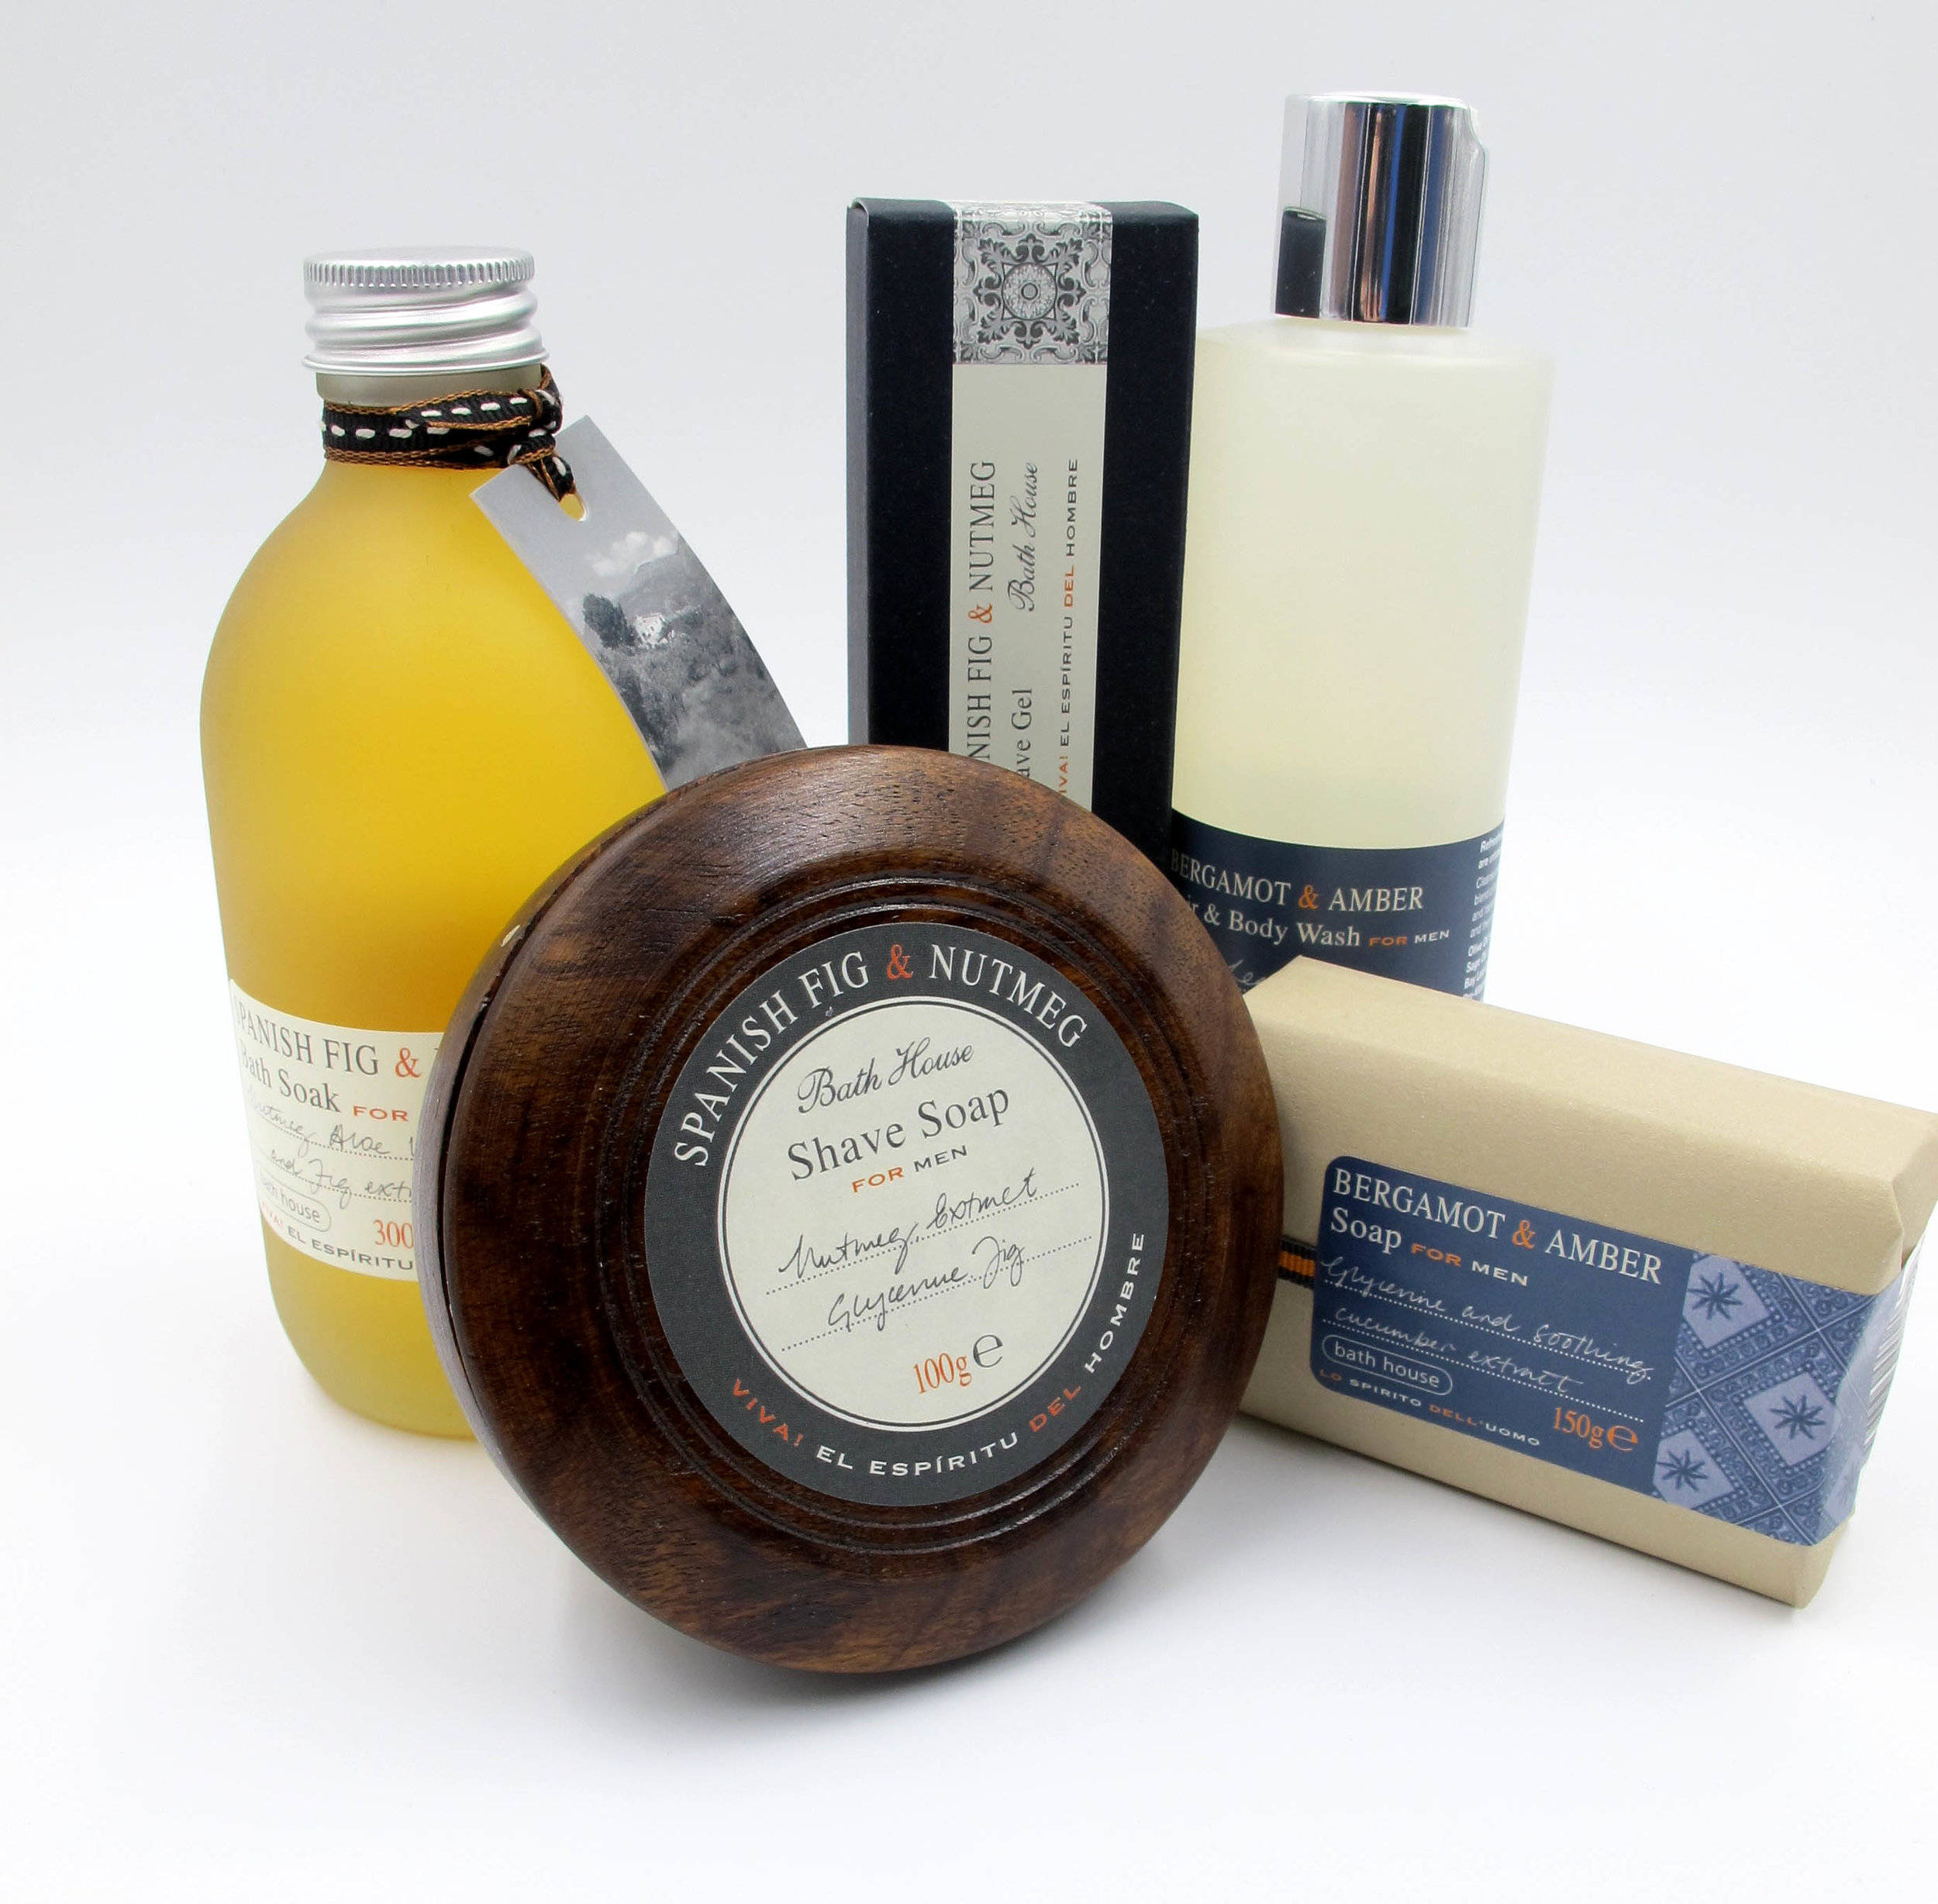 Luxury bath products for men, by Bath House